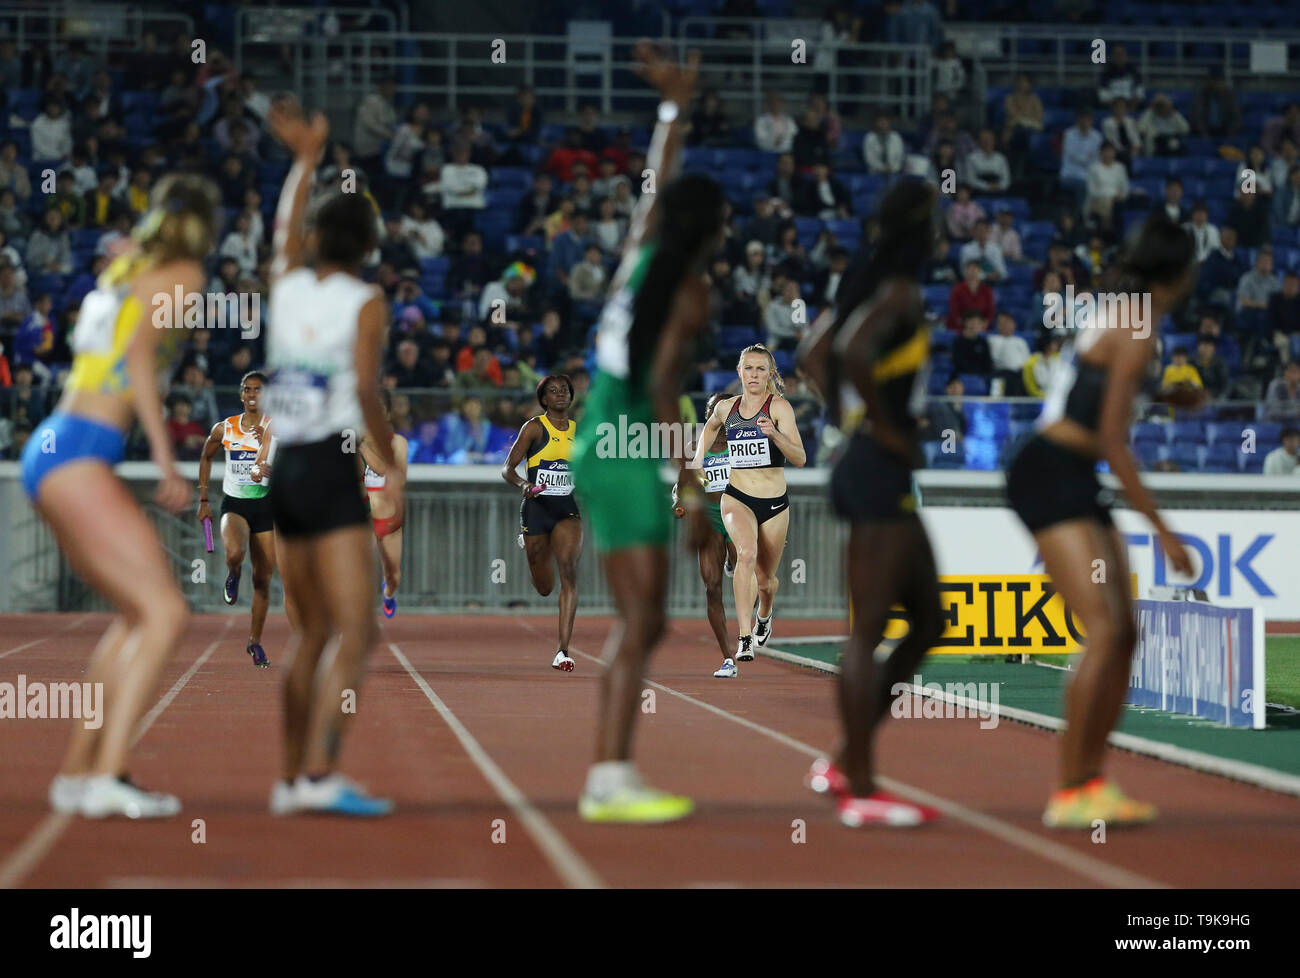 YOKOHAMA, JAPAN - MAY 10: Madeline Price of Canada races down the home straight in the women's 4x400m relay during Day 1 of the 2019 IAAF World Relay Championships at the Nissan Stadium on Saturday May 11, 2019 in Yokohama, Japan. (Photo by Roger Sedres for the IAAF) - Stock Image